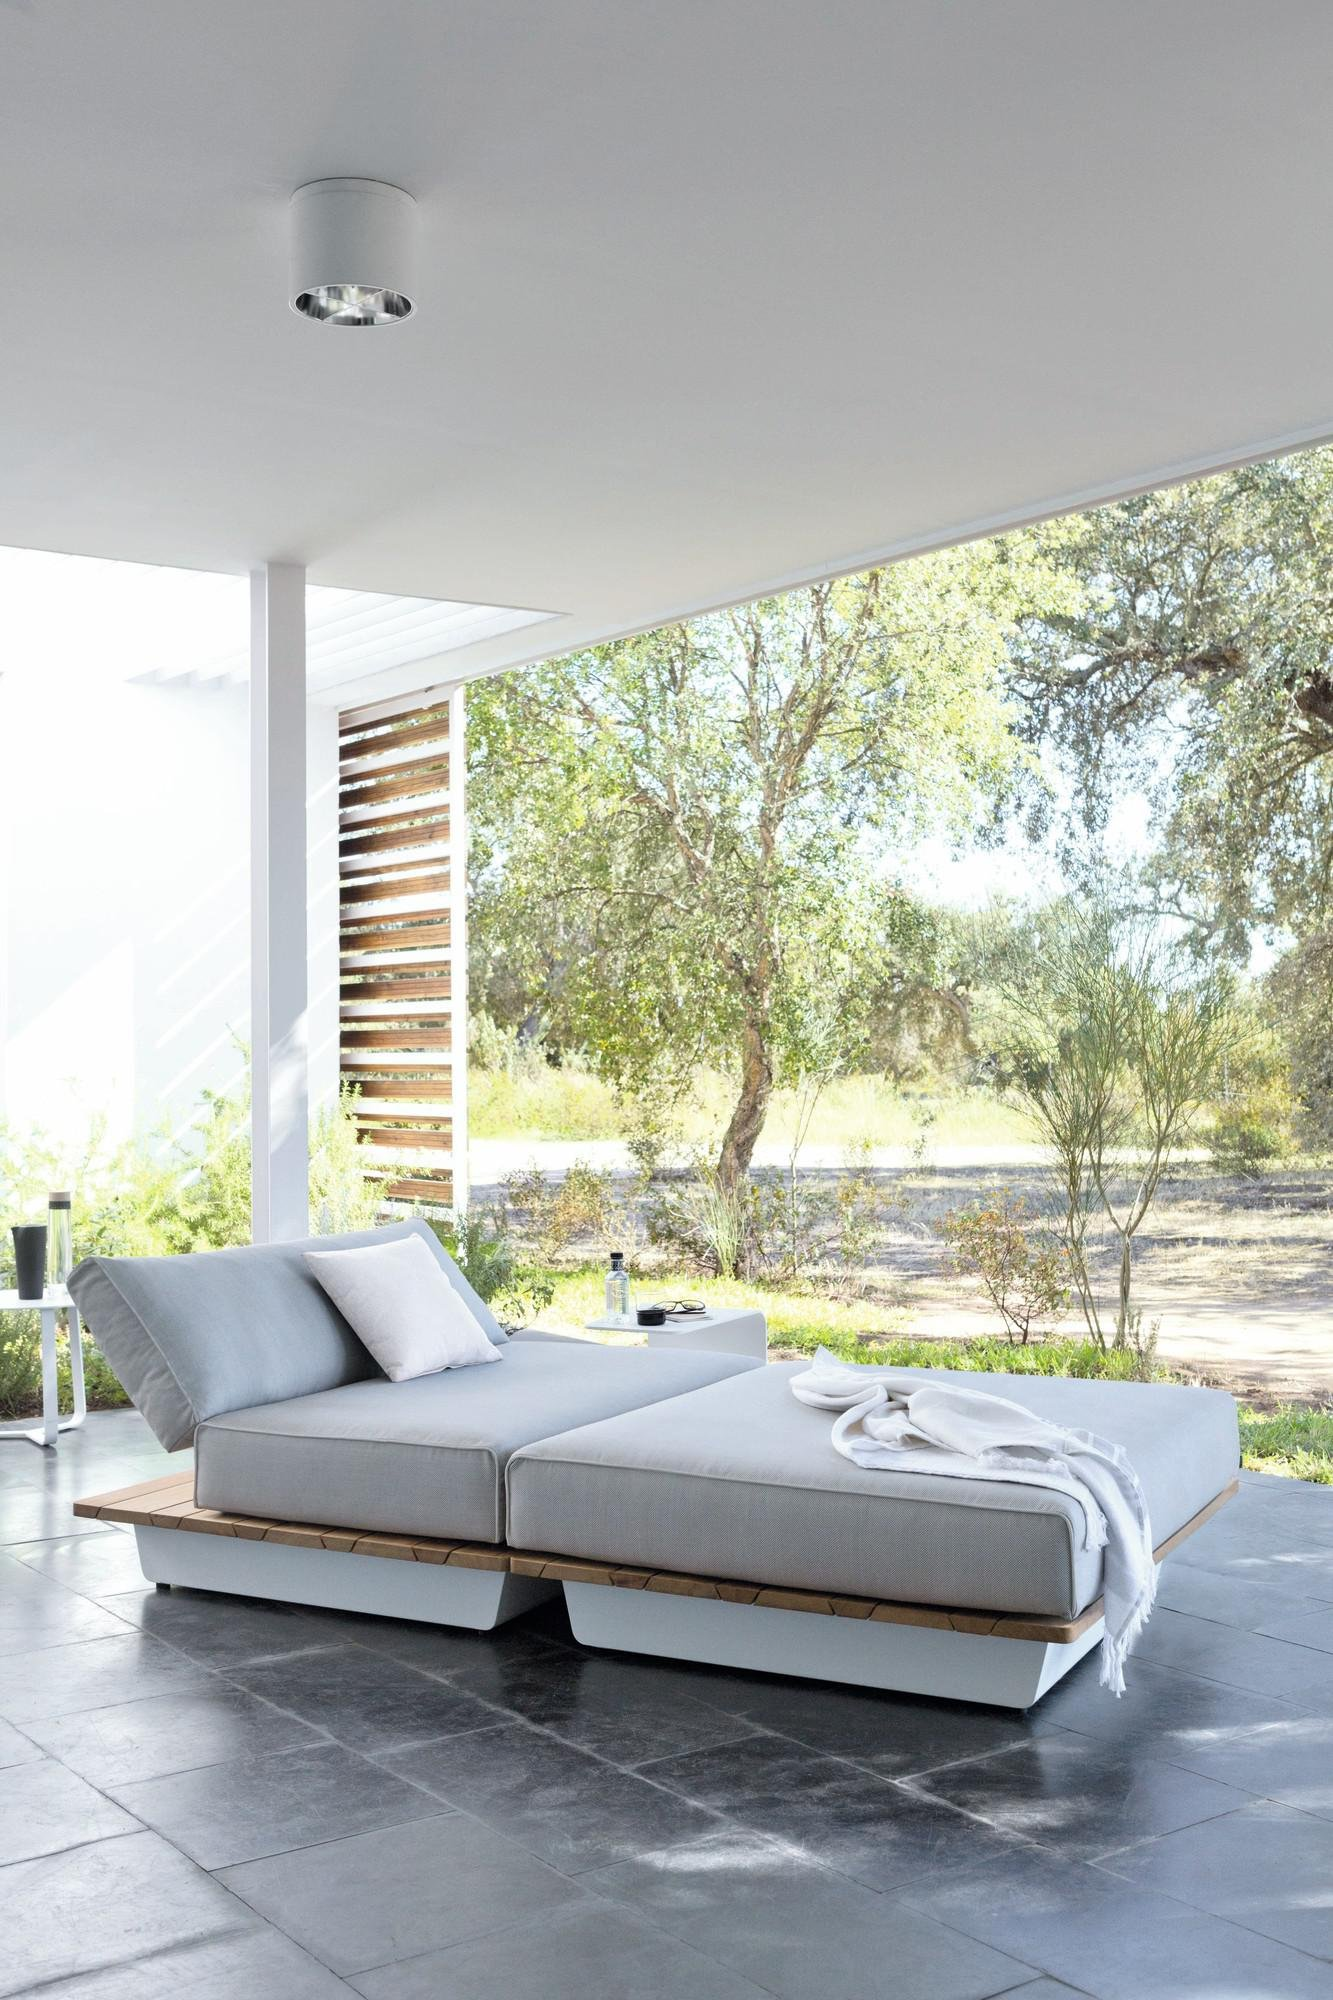 Air Daybed sunbed from Manutti, designed by Gerd Couckhuyt